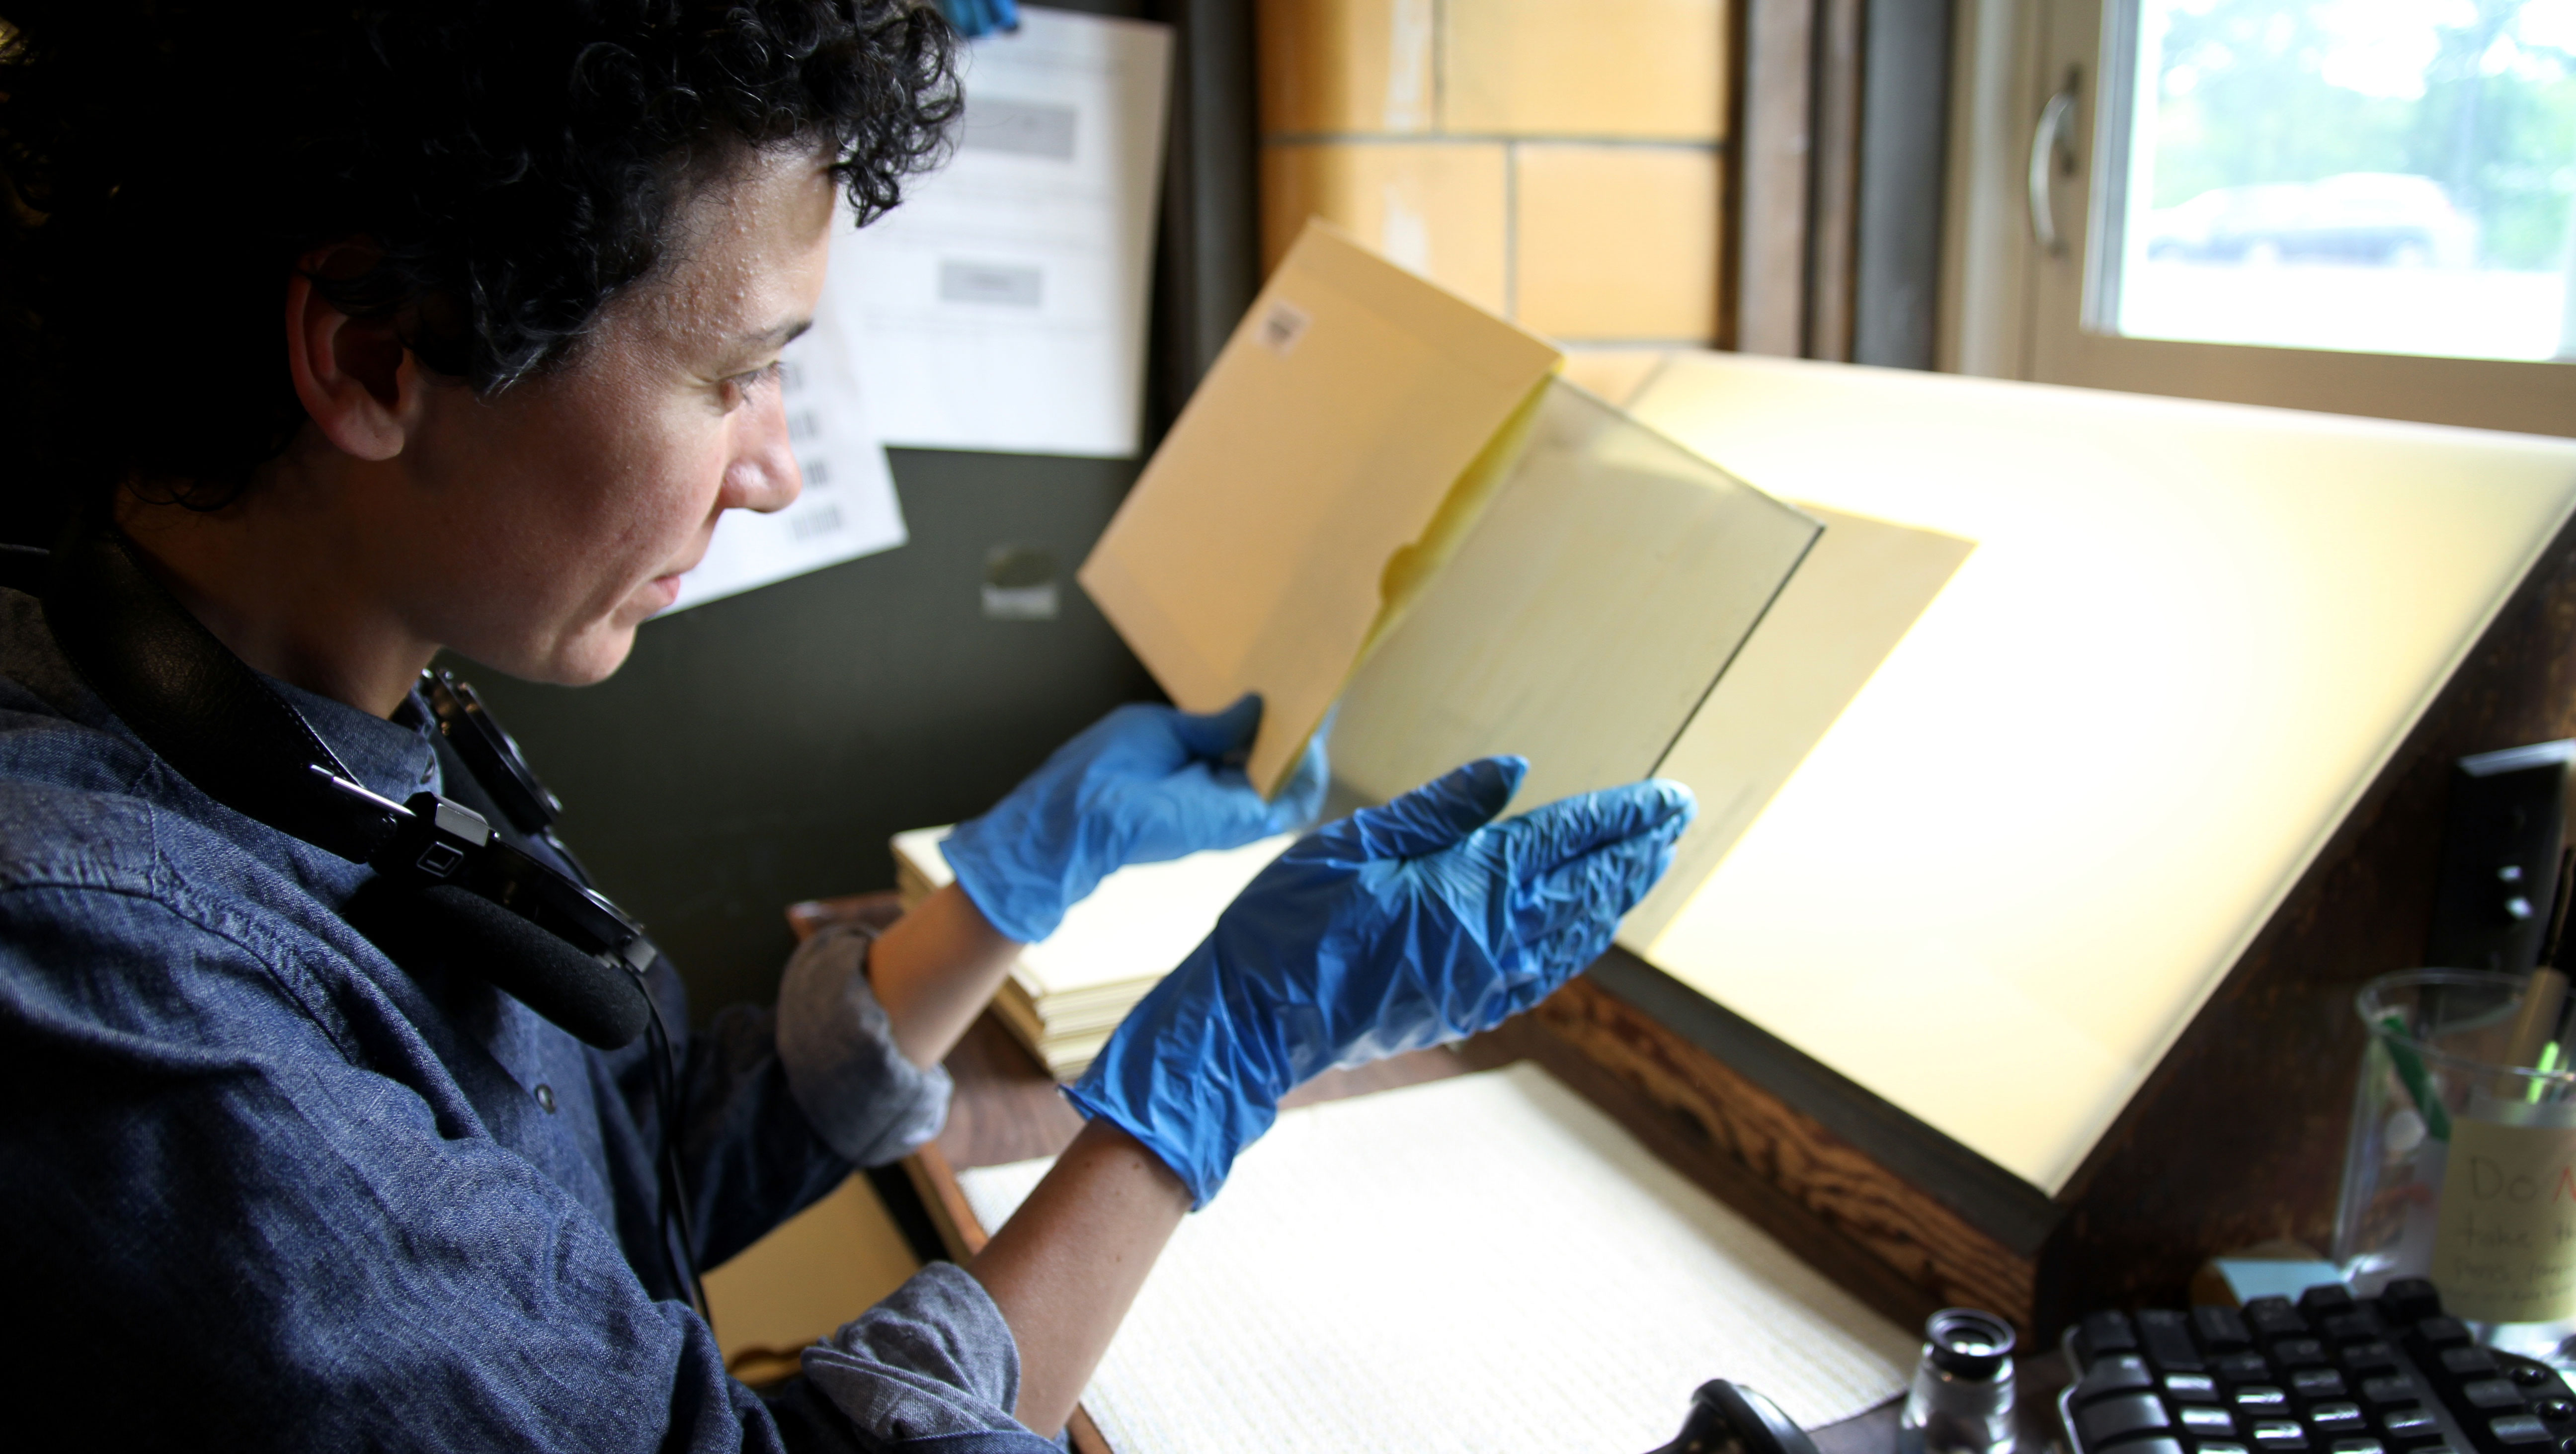 A woman holds up a glass plate, which she just removed from a paper envelope. She is staring at the plate, sitting in front of a window.